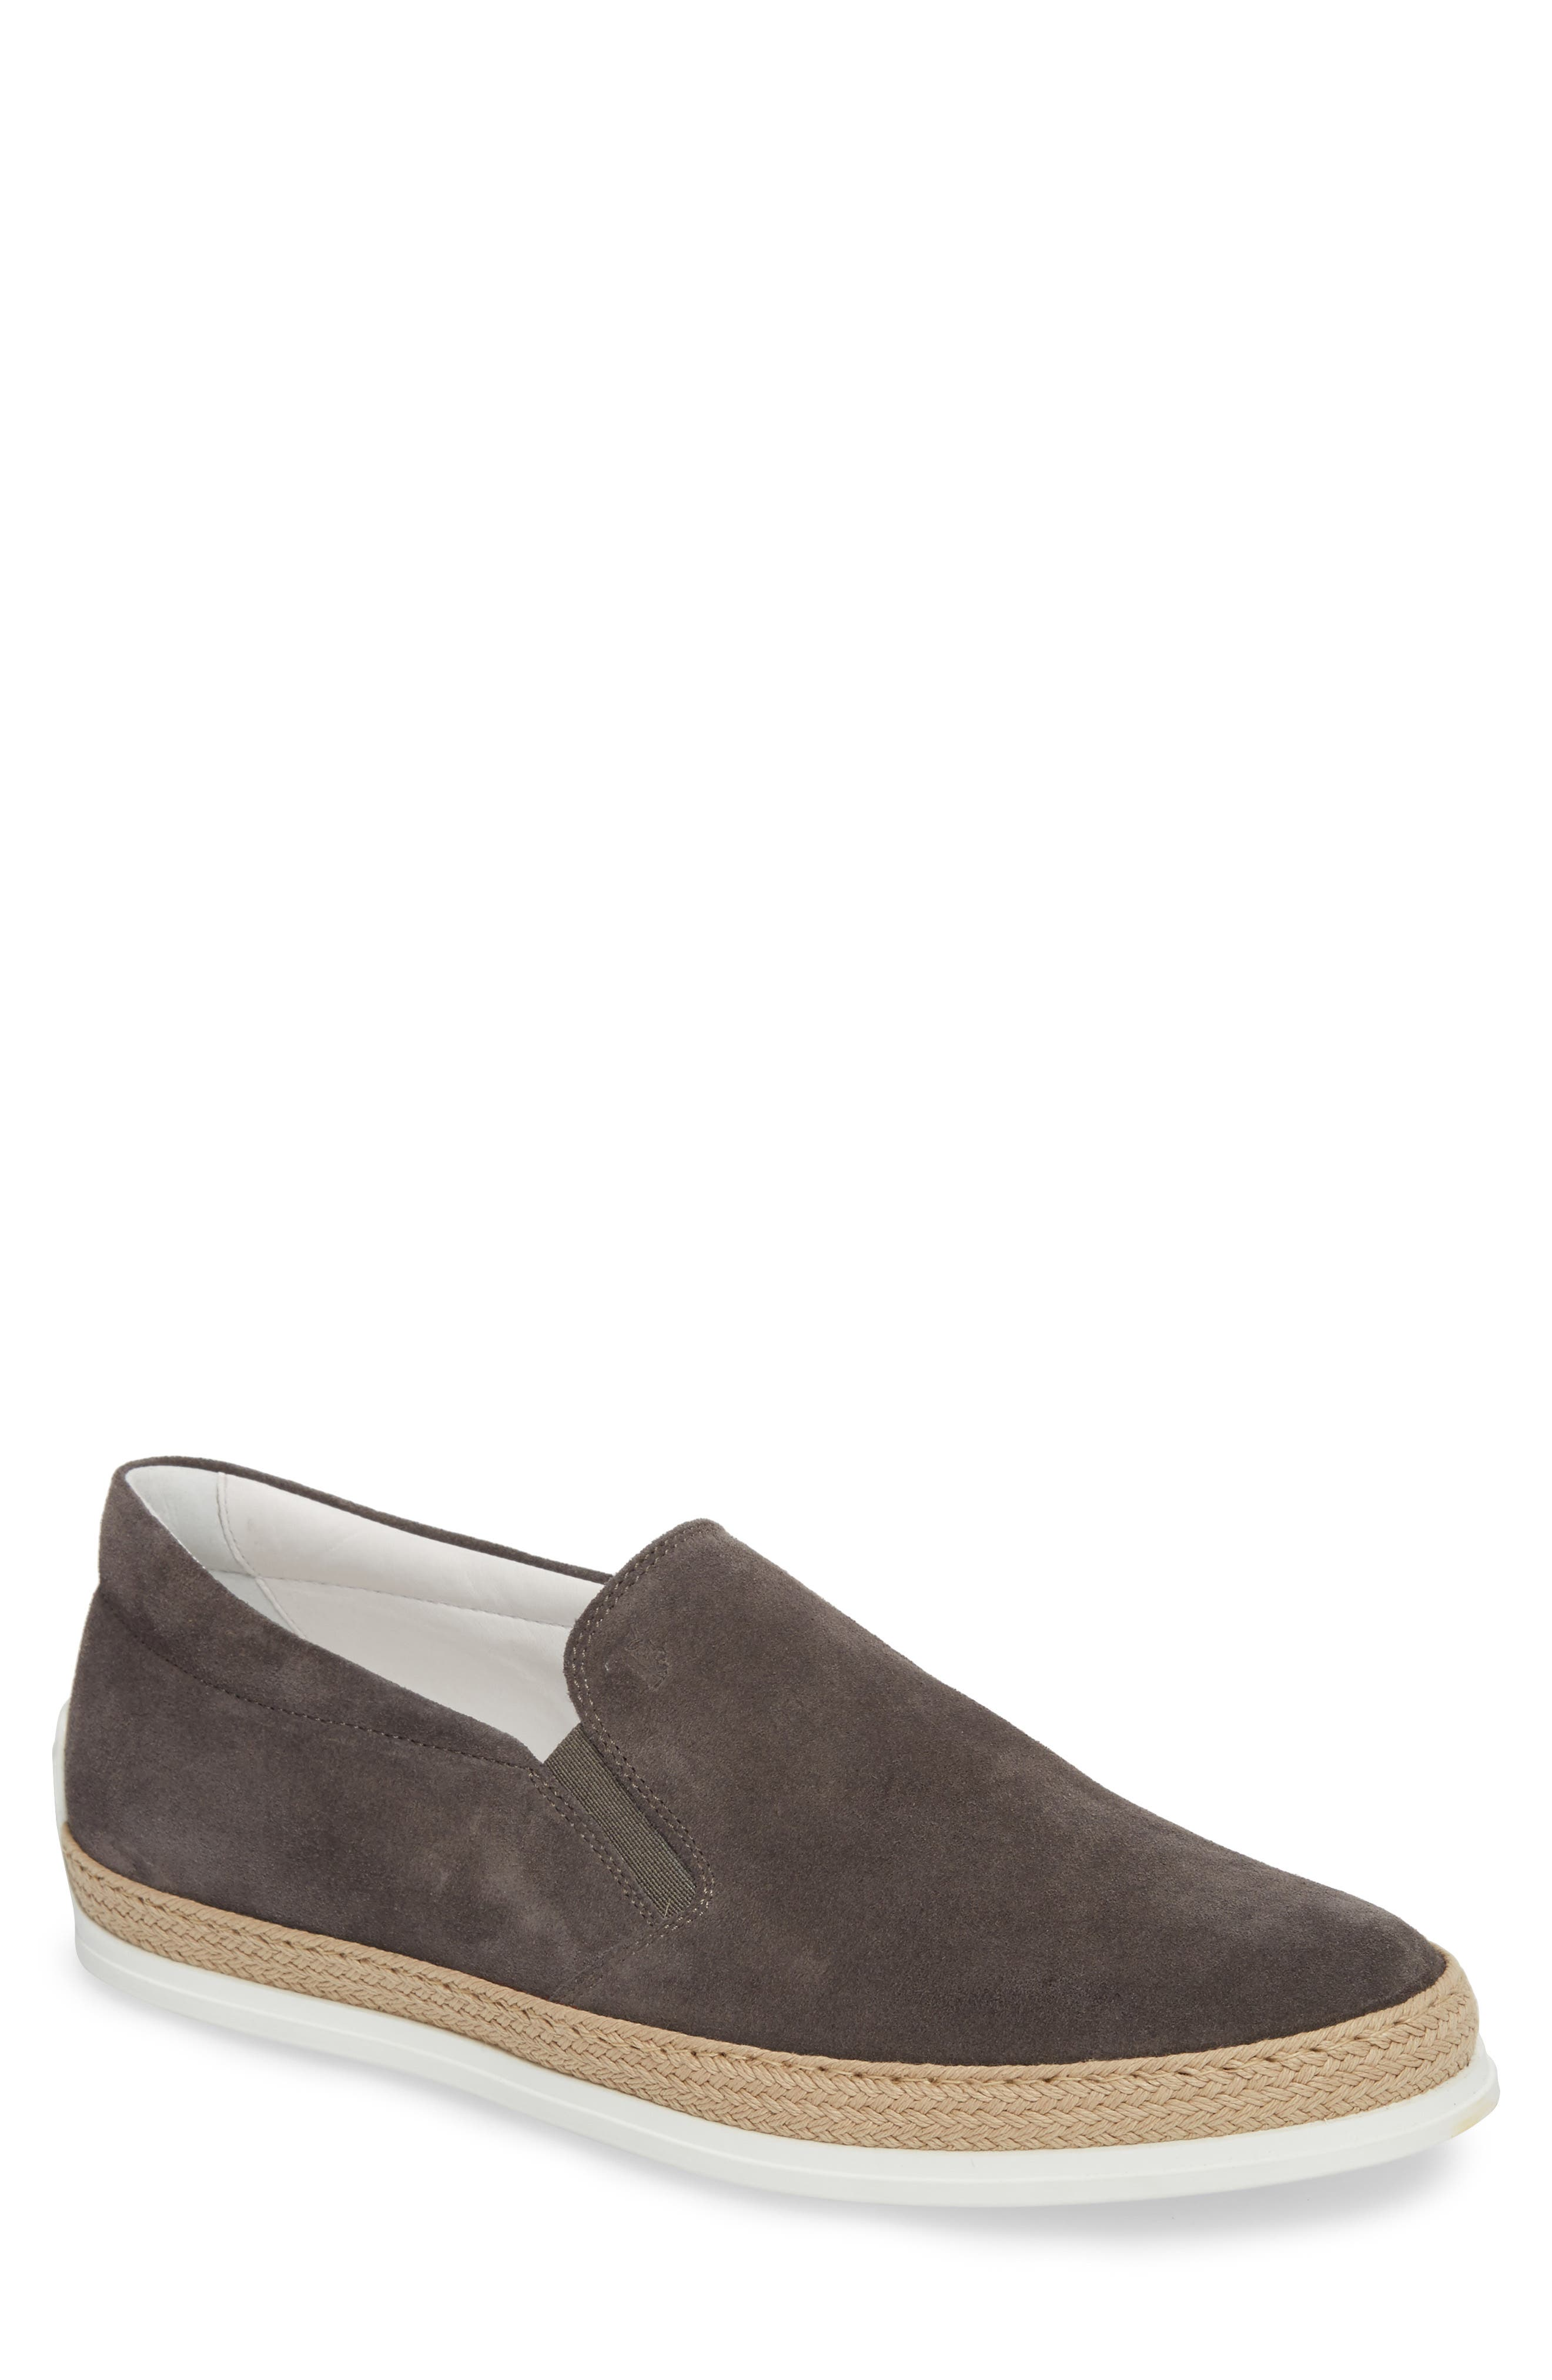 Espadrille Slip-On,                         Main,                         color, 030